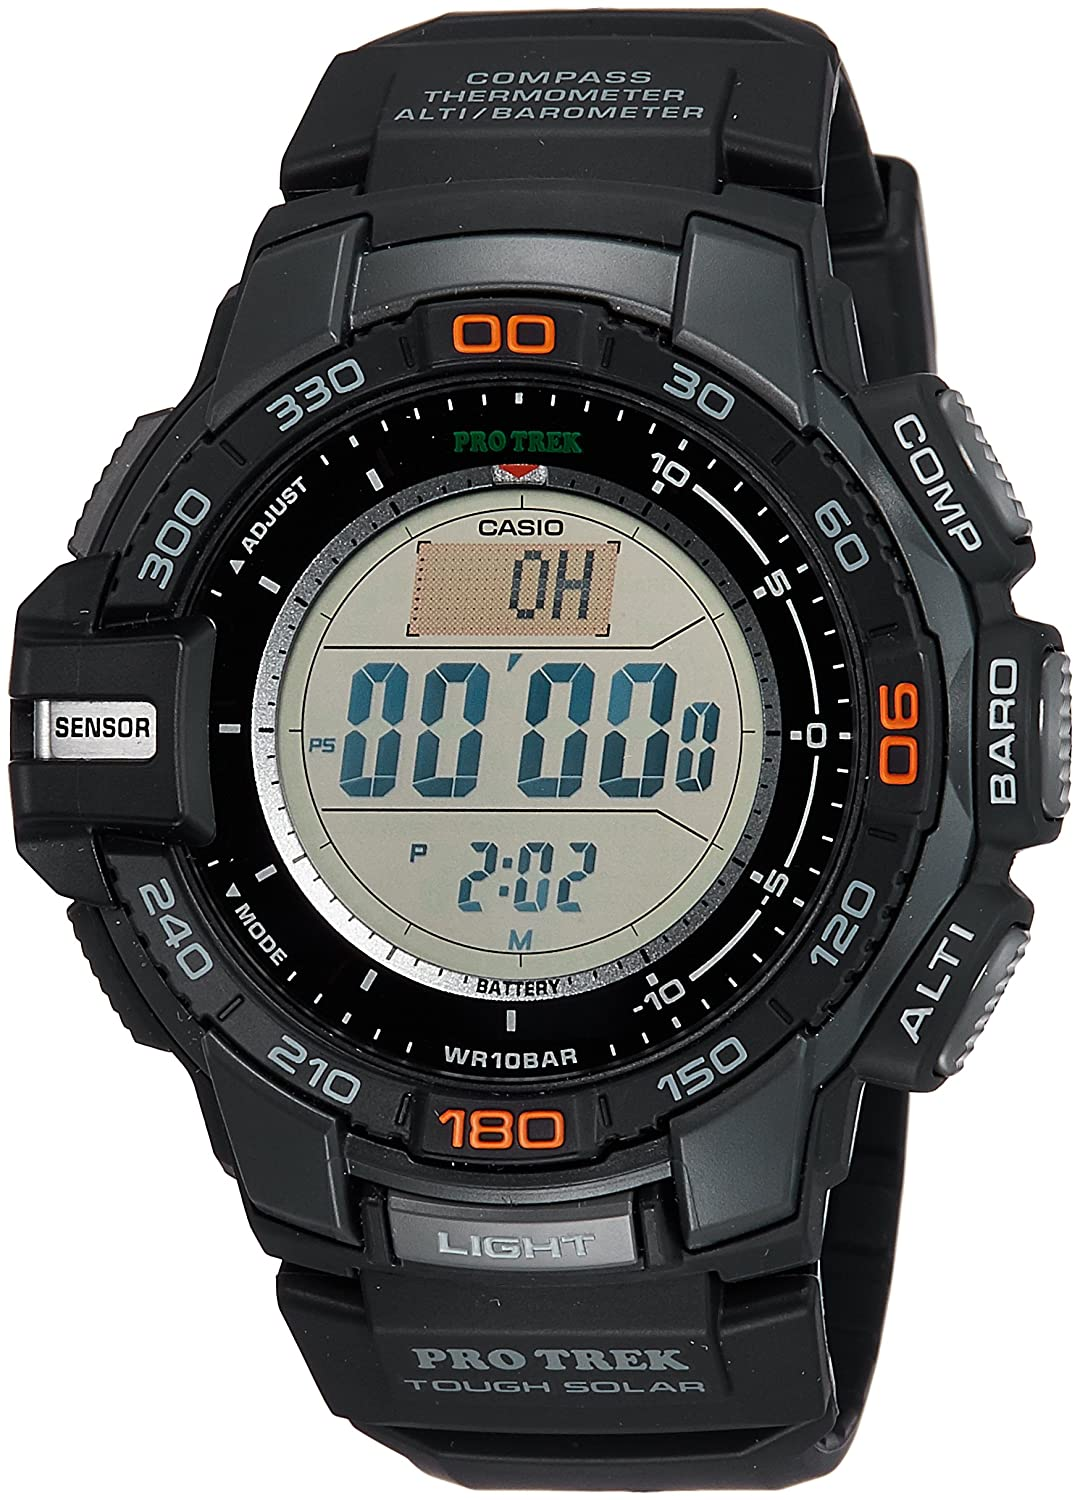 1ce38eb2c1c9 Amazon.com  Casio Men s Pro Trek PRG-270-1 Tough Solar Triple Sensor  Multifunction Digital Sport Watch  Casio  Watches